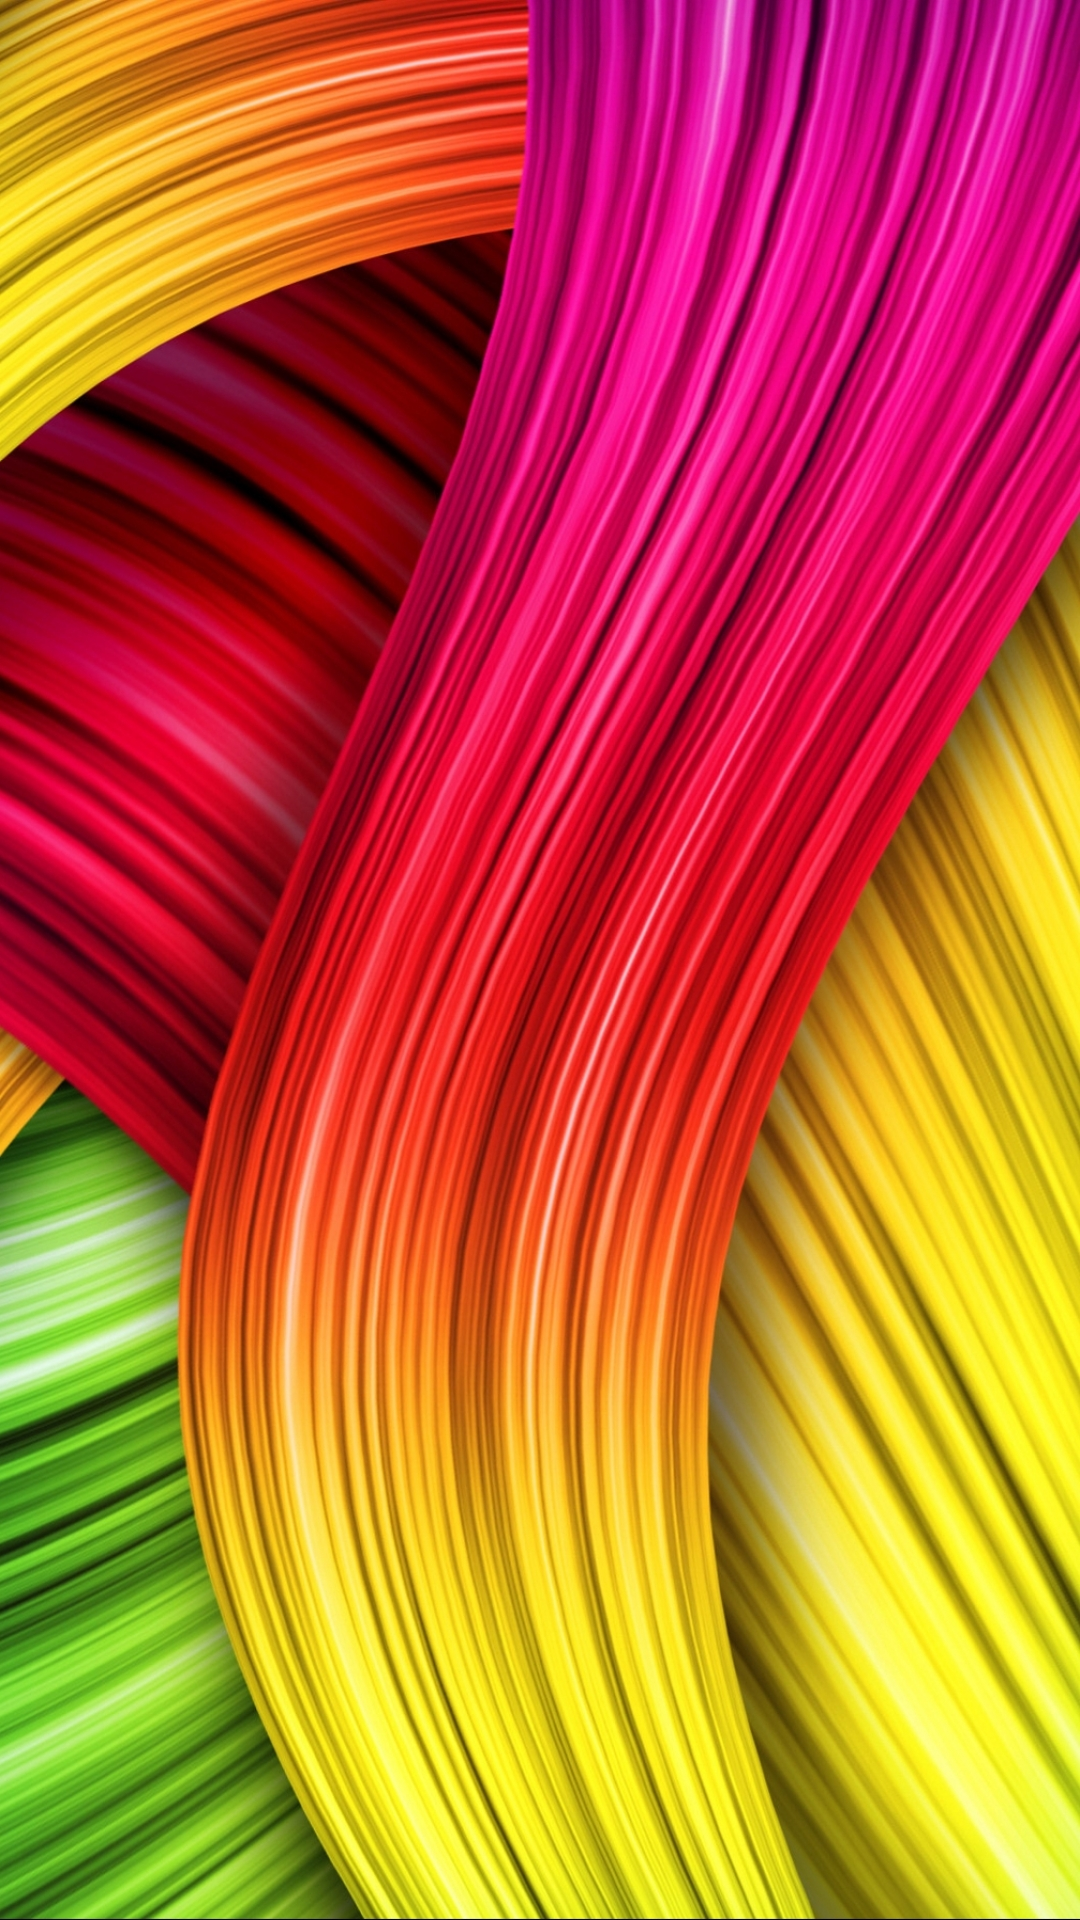 View Colourful Iphone 6 Wallpaper Images